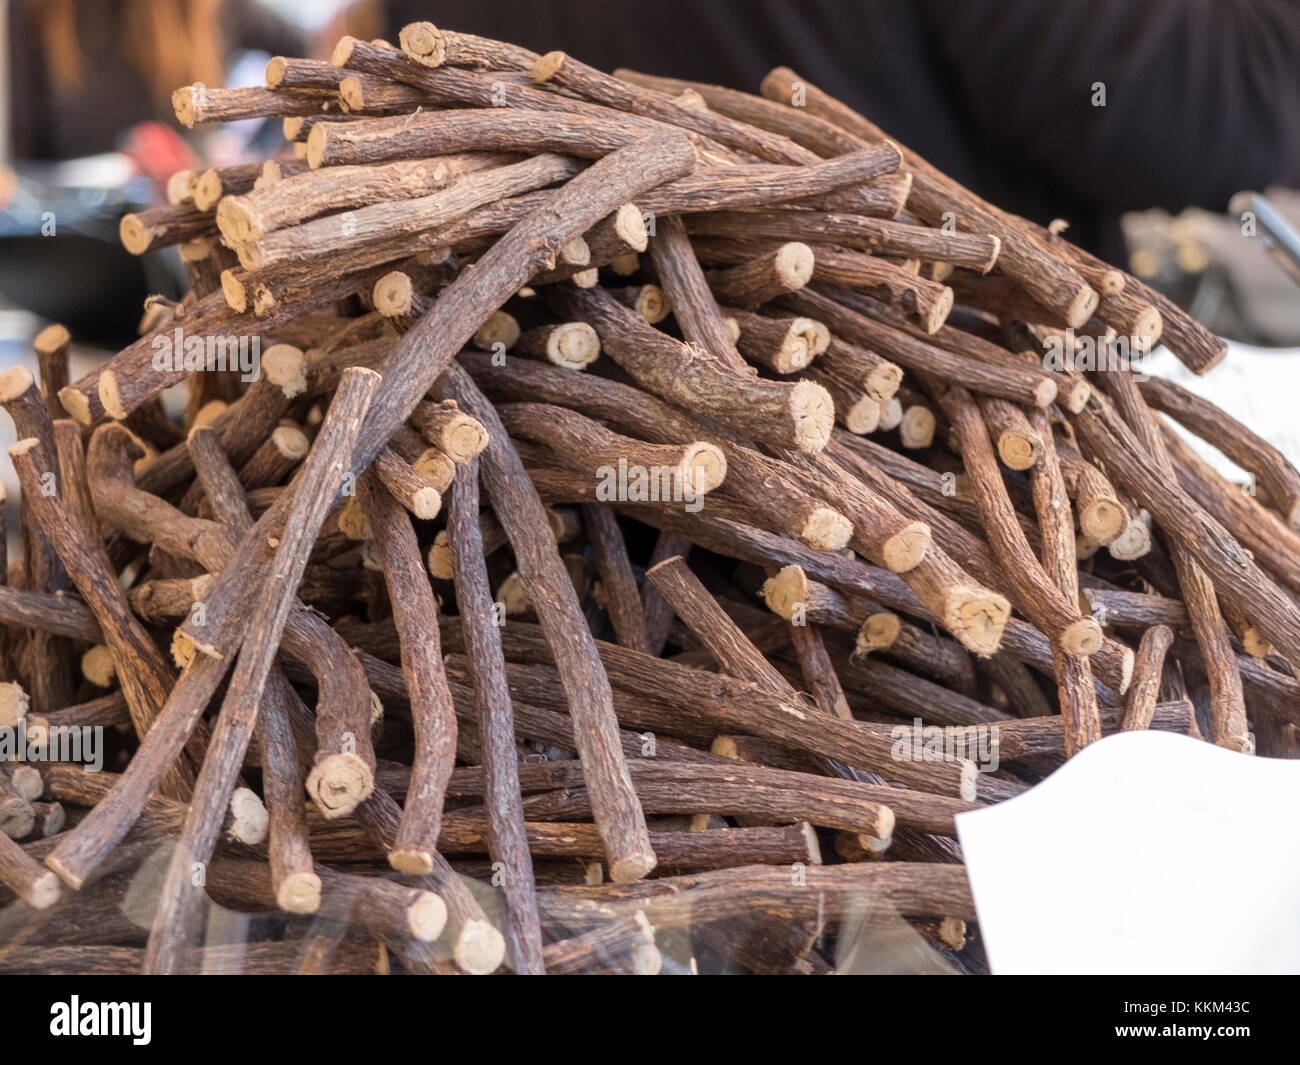 Close up with a bunch of raw licorice root sticks. Stock Photo